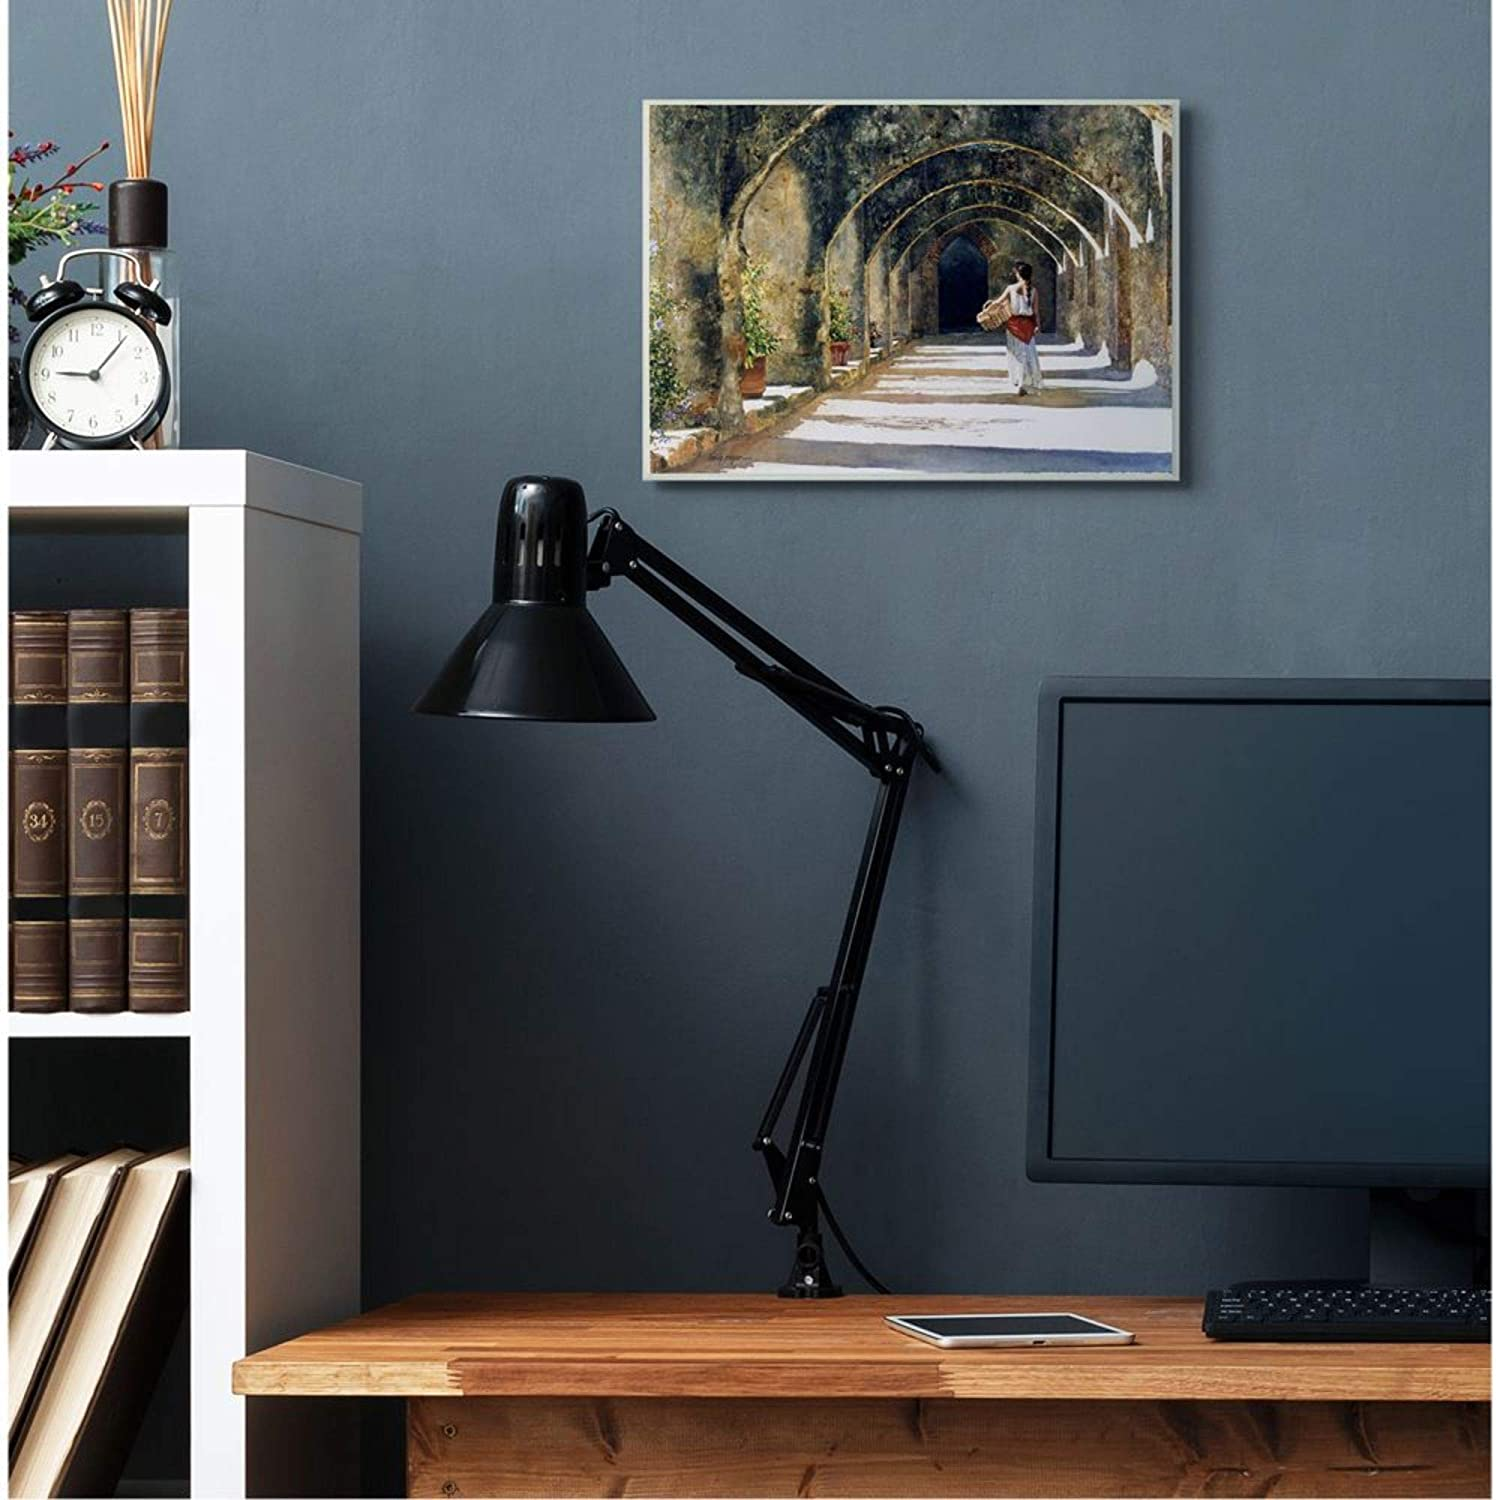 16 x 20 Stupell Industries Woman with Basket Walking Under Classic Arches Heide Presse Black Framed Wall Art